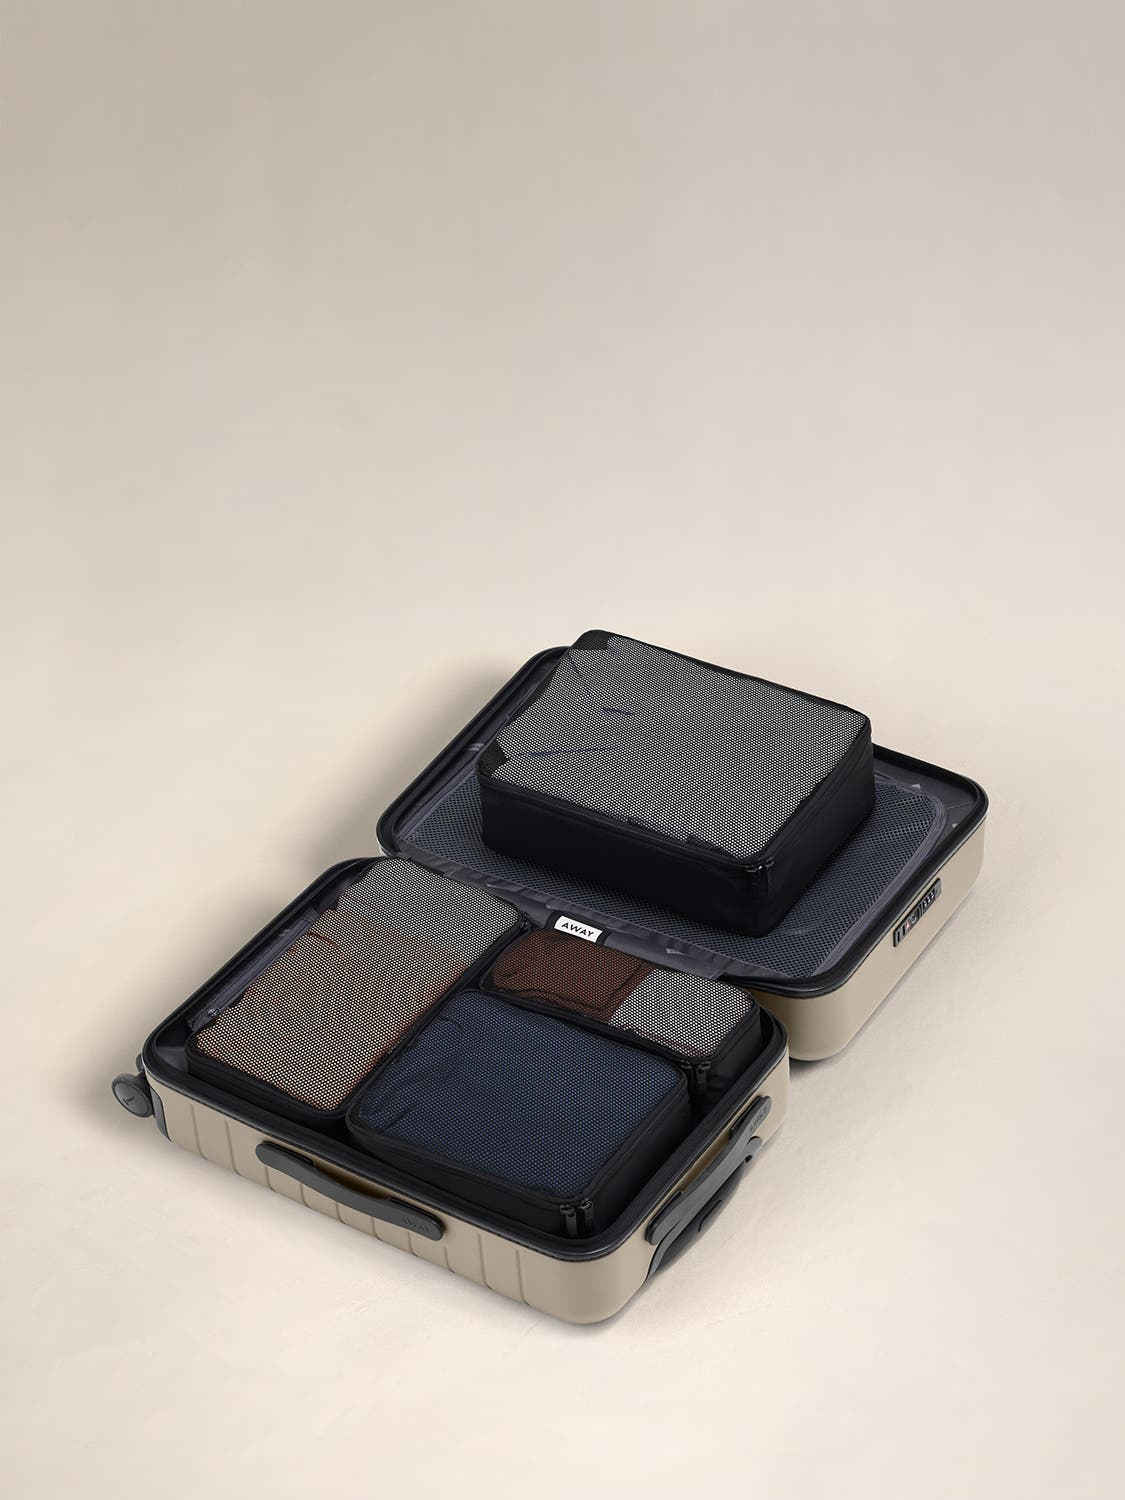 Black travel packing cubes displayed in an Away suitcase